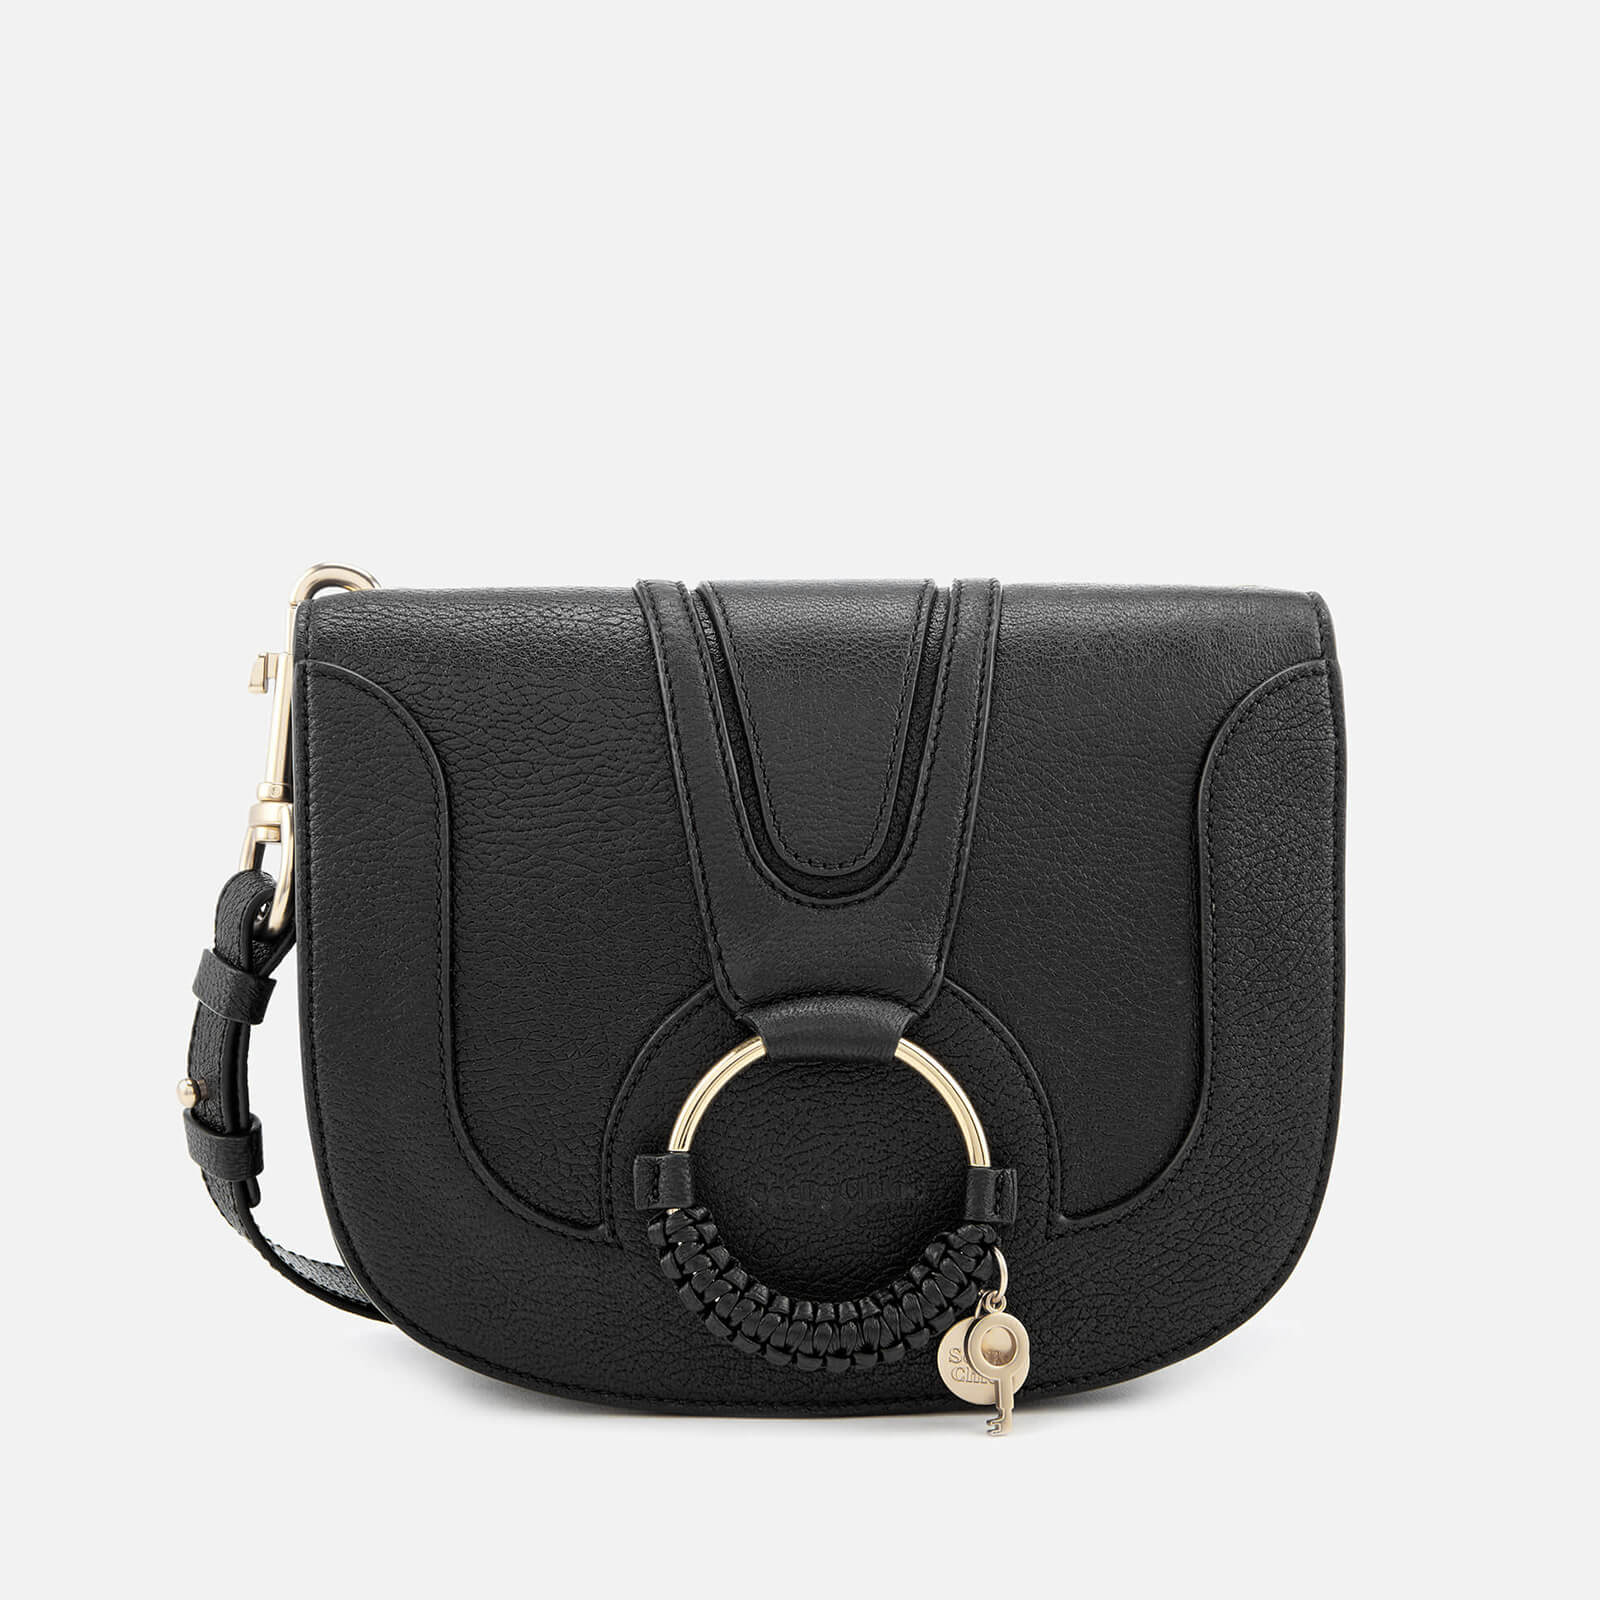 classic style low price outlet store sale See By Chloé Women's Hana Leather Cross Body Bag - Black